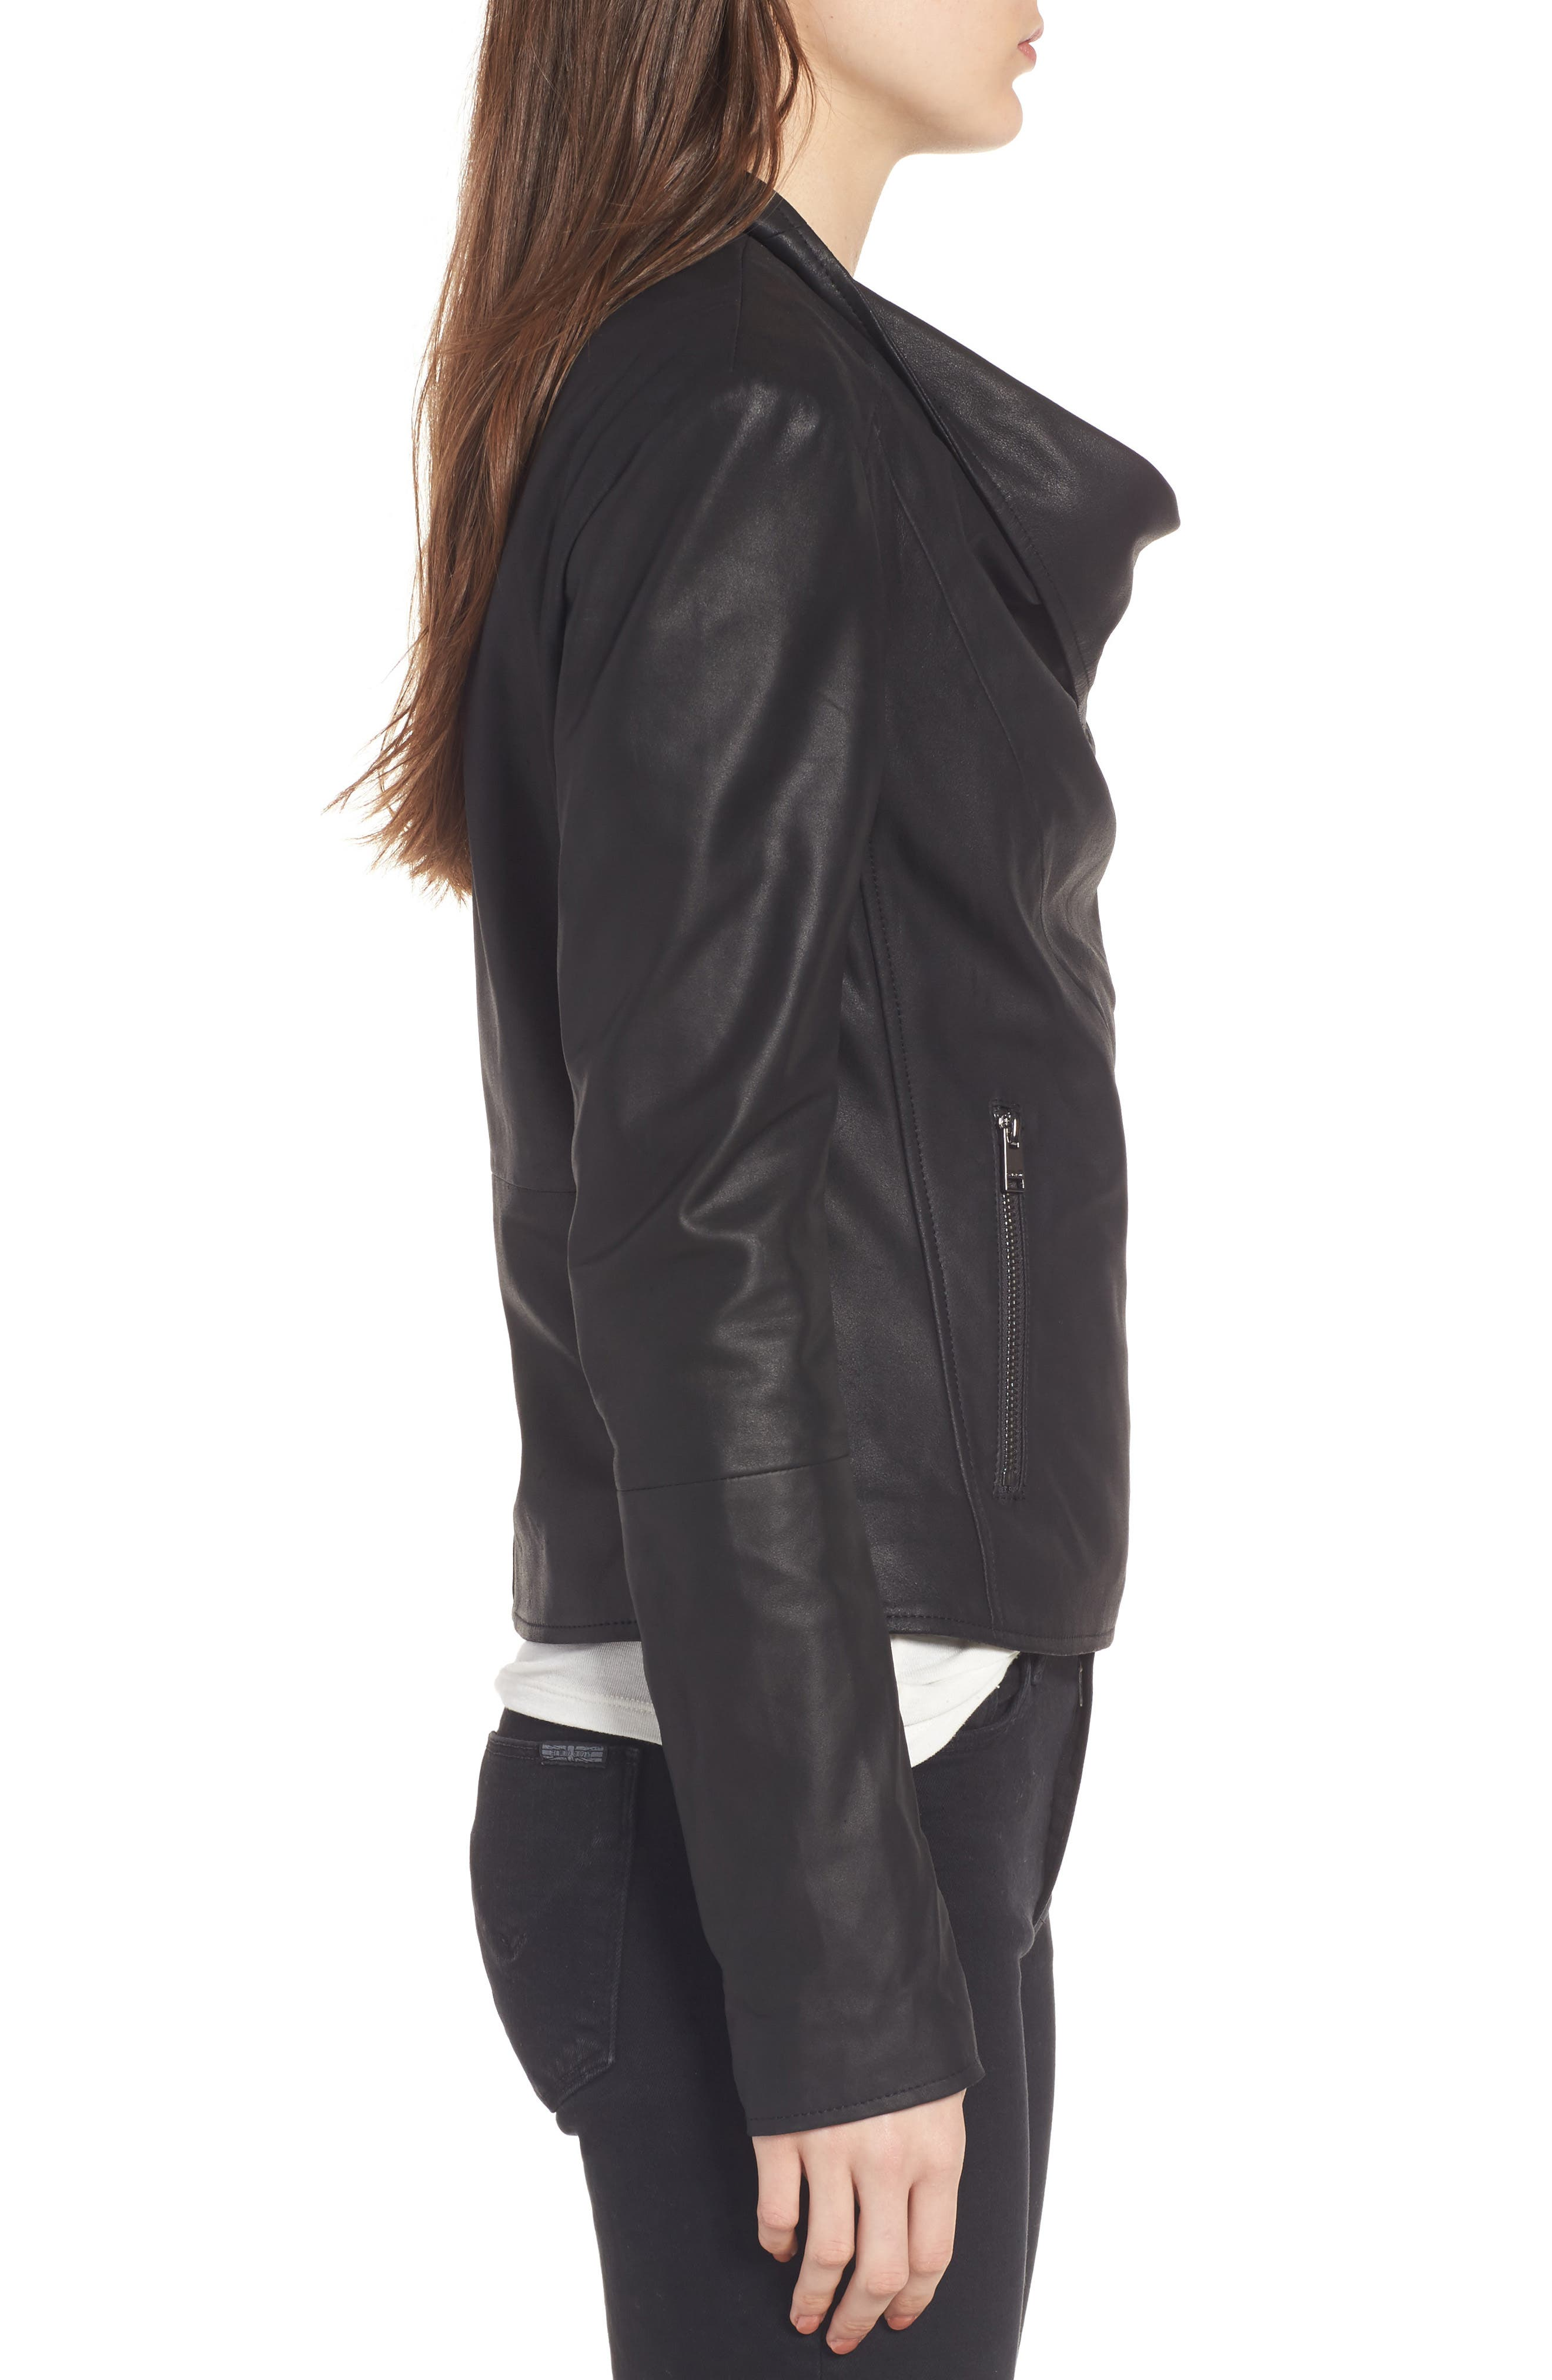 Cascade Leather Jacket,                             Alternate thumbnail 3, color,                             001